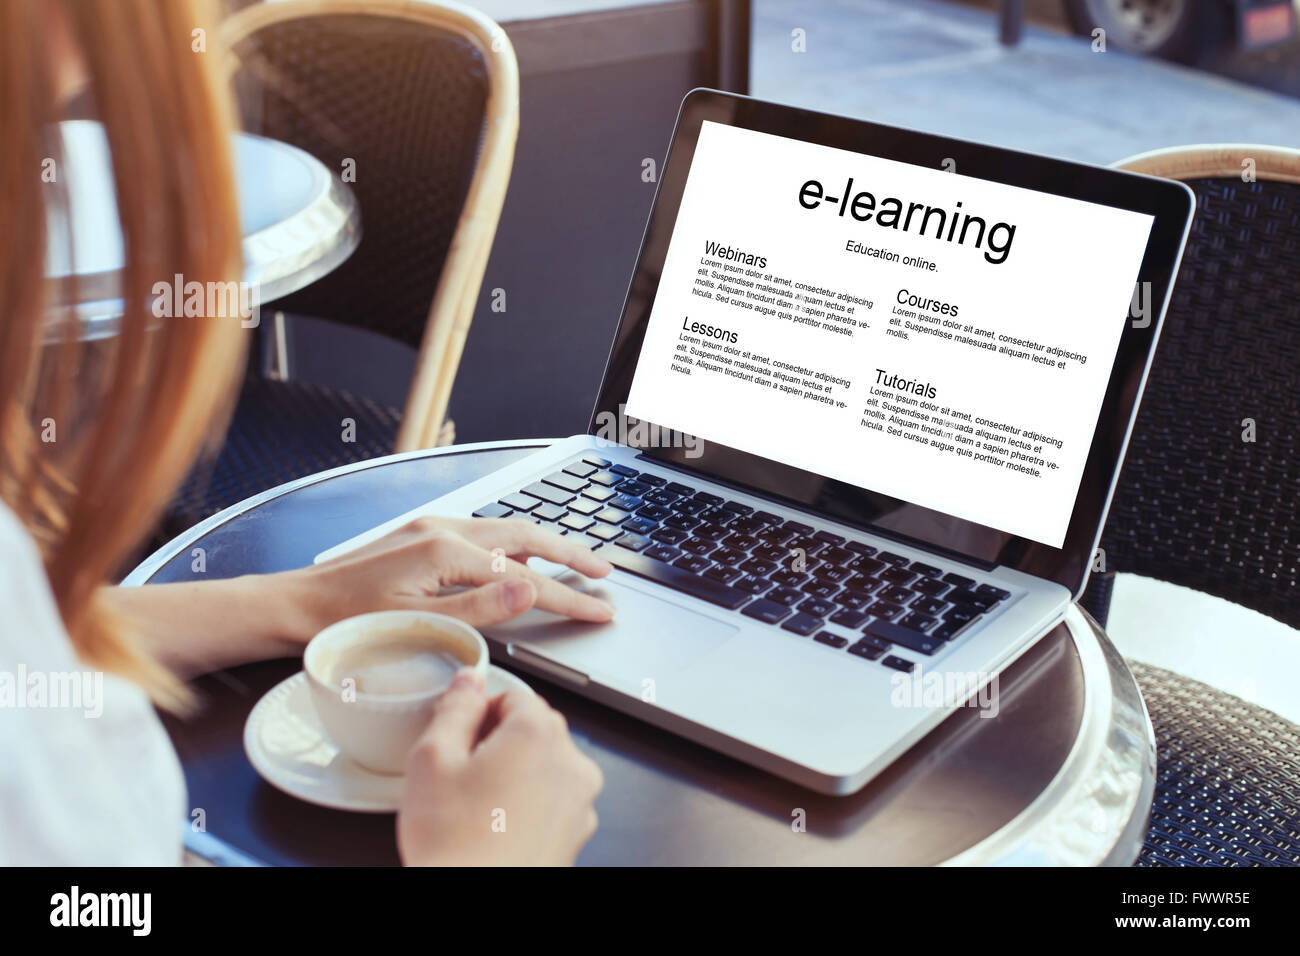 E-learning, formation en ligne concept, woman with laptop Photo Stock